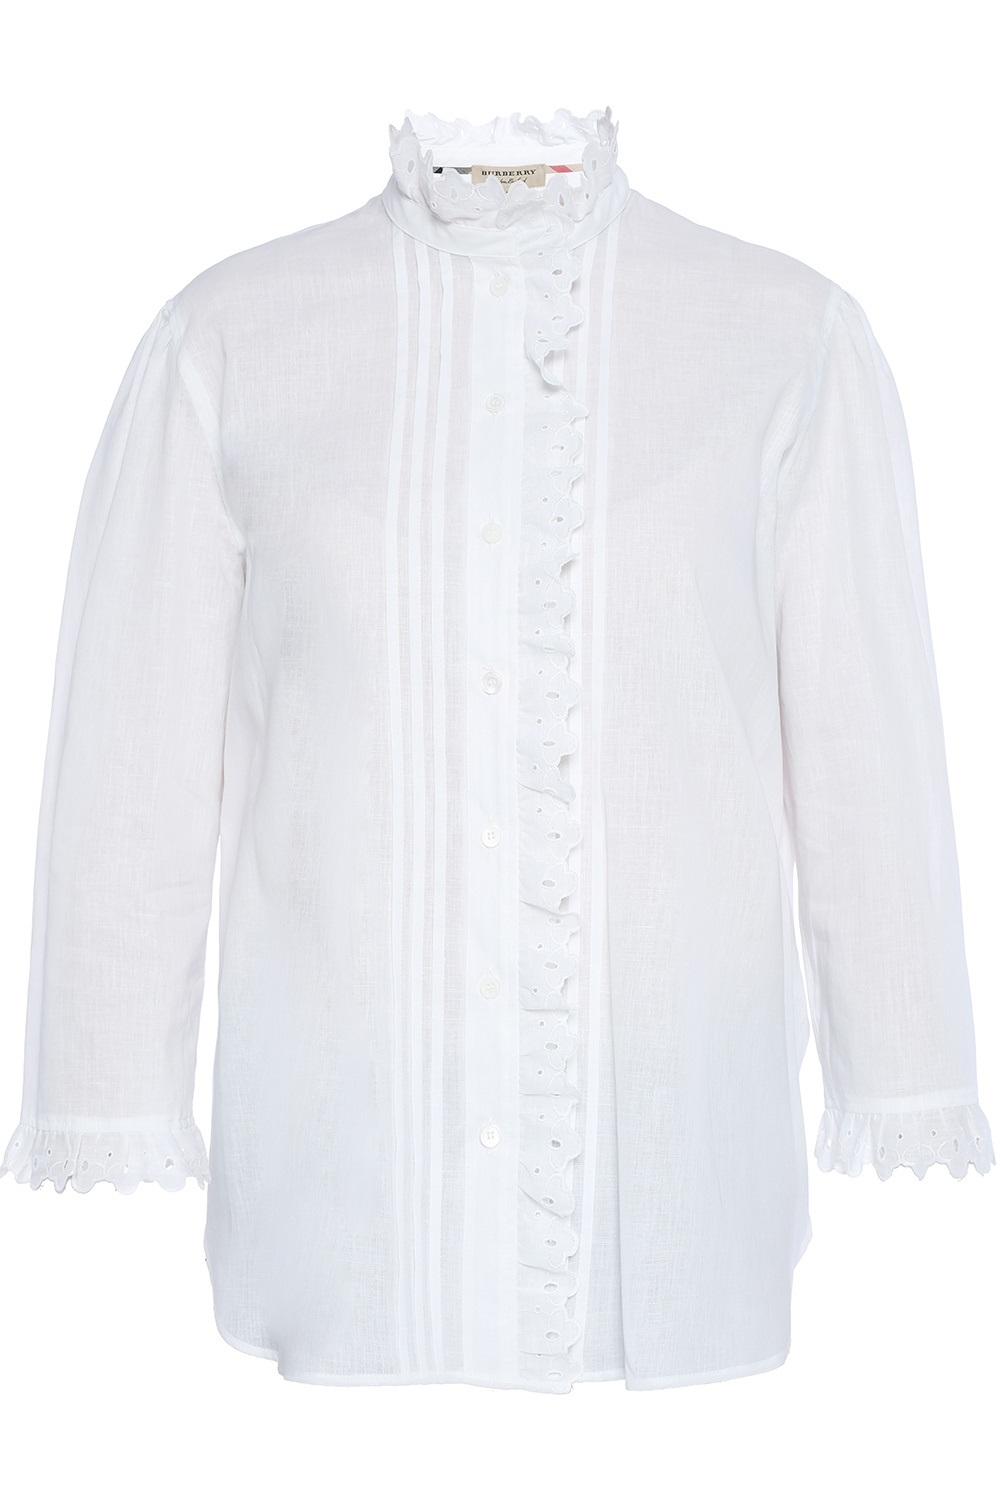 Burberry Begonia Ruffled Linen And Cotton-blend Shirt In White